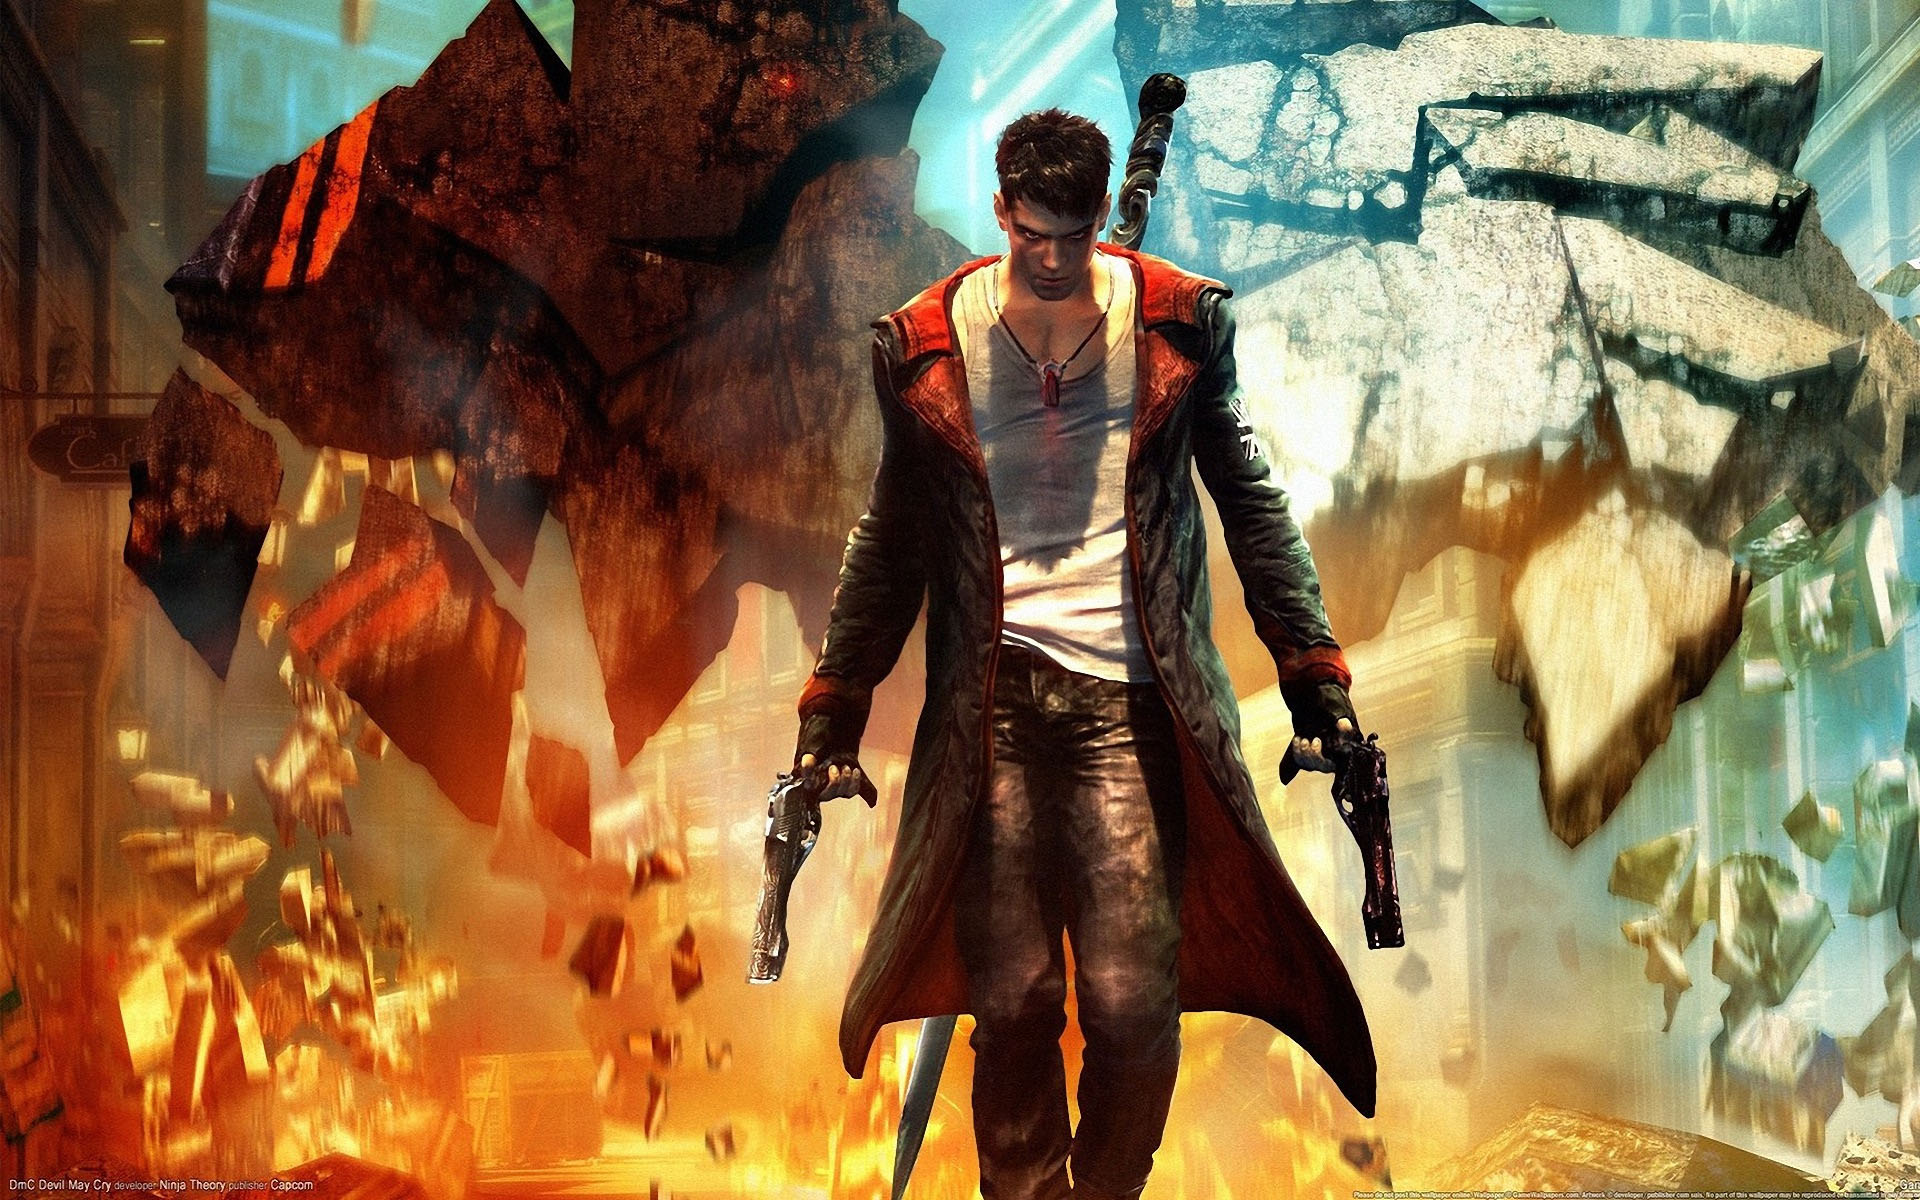 Devil May Cry 5 Wallpaper 1920x1200 Wallpapers 1920x1200 Wallpapers 1920x1200